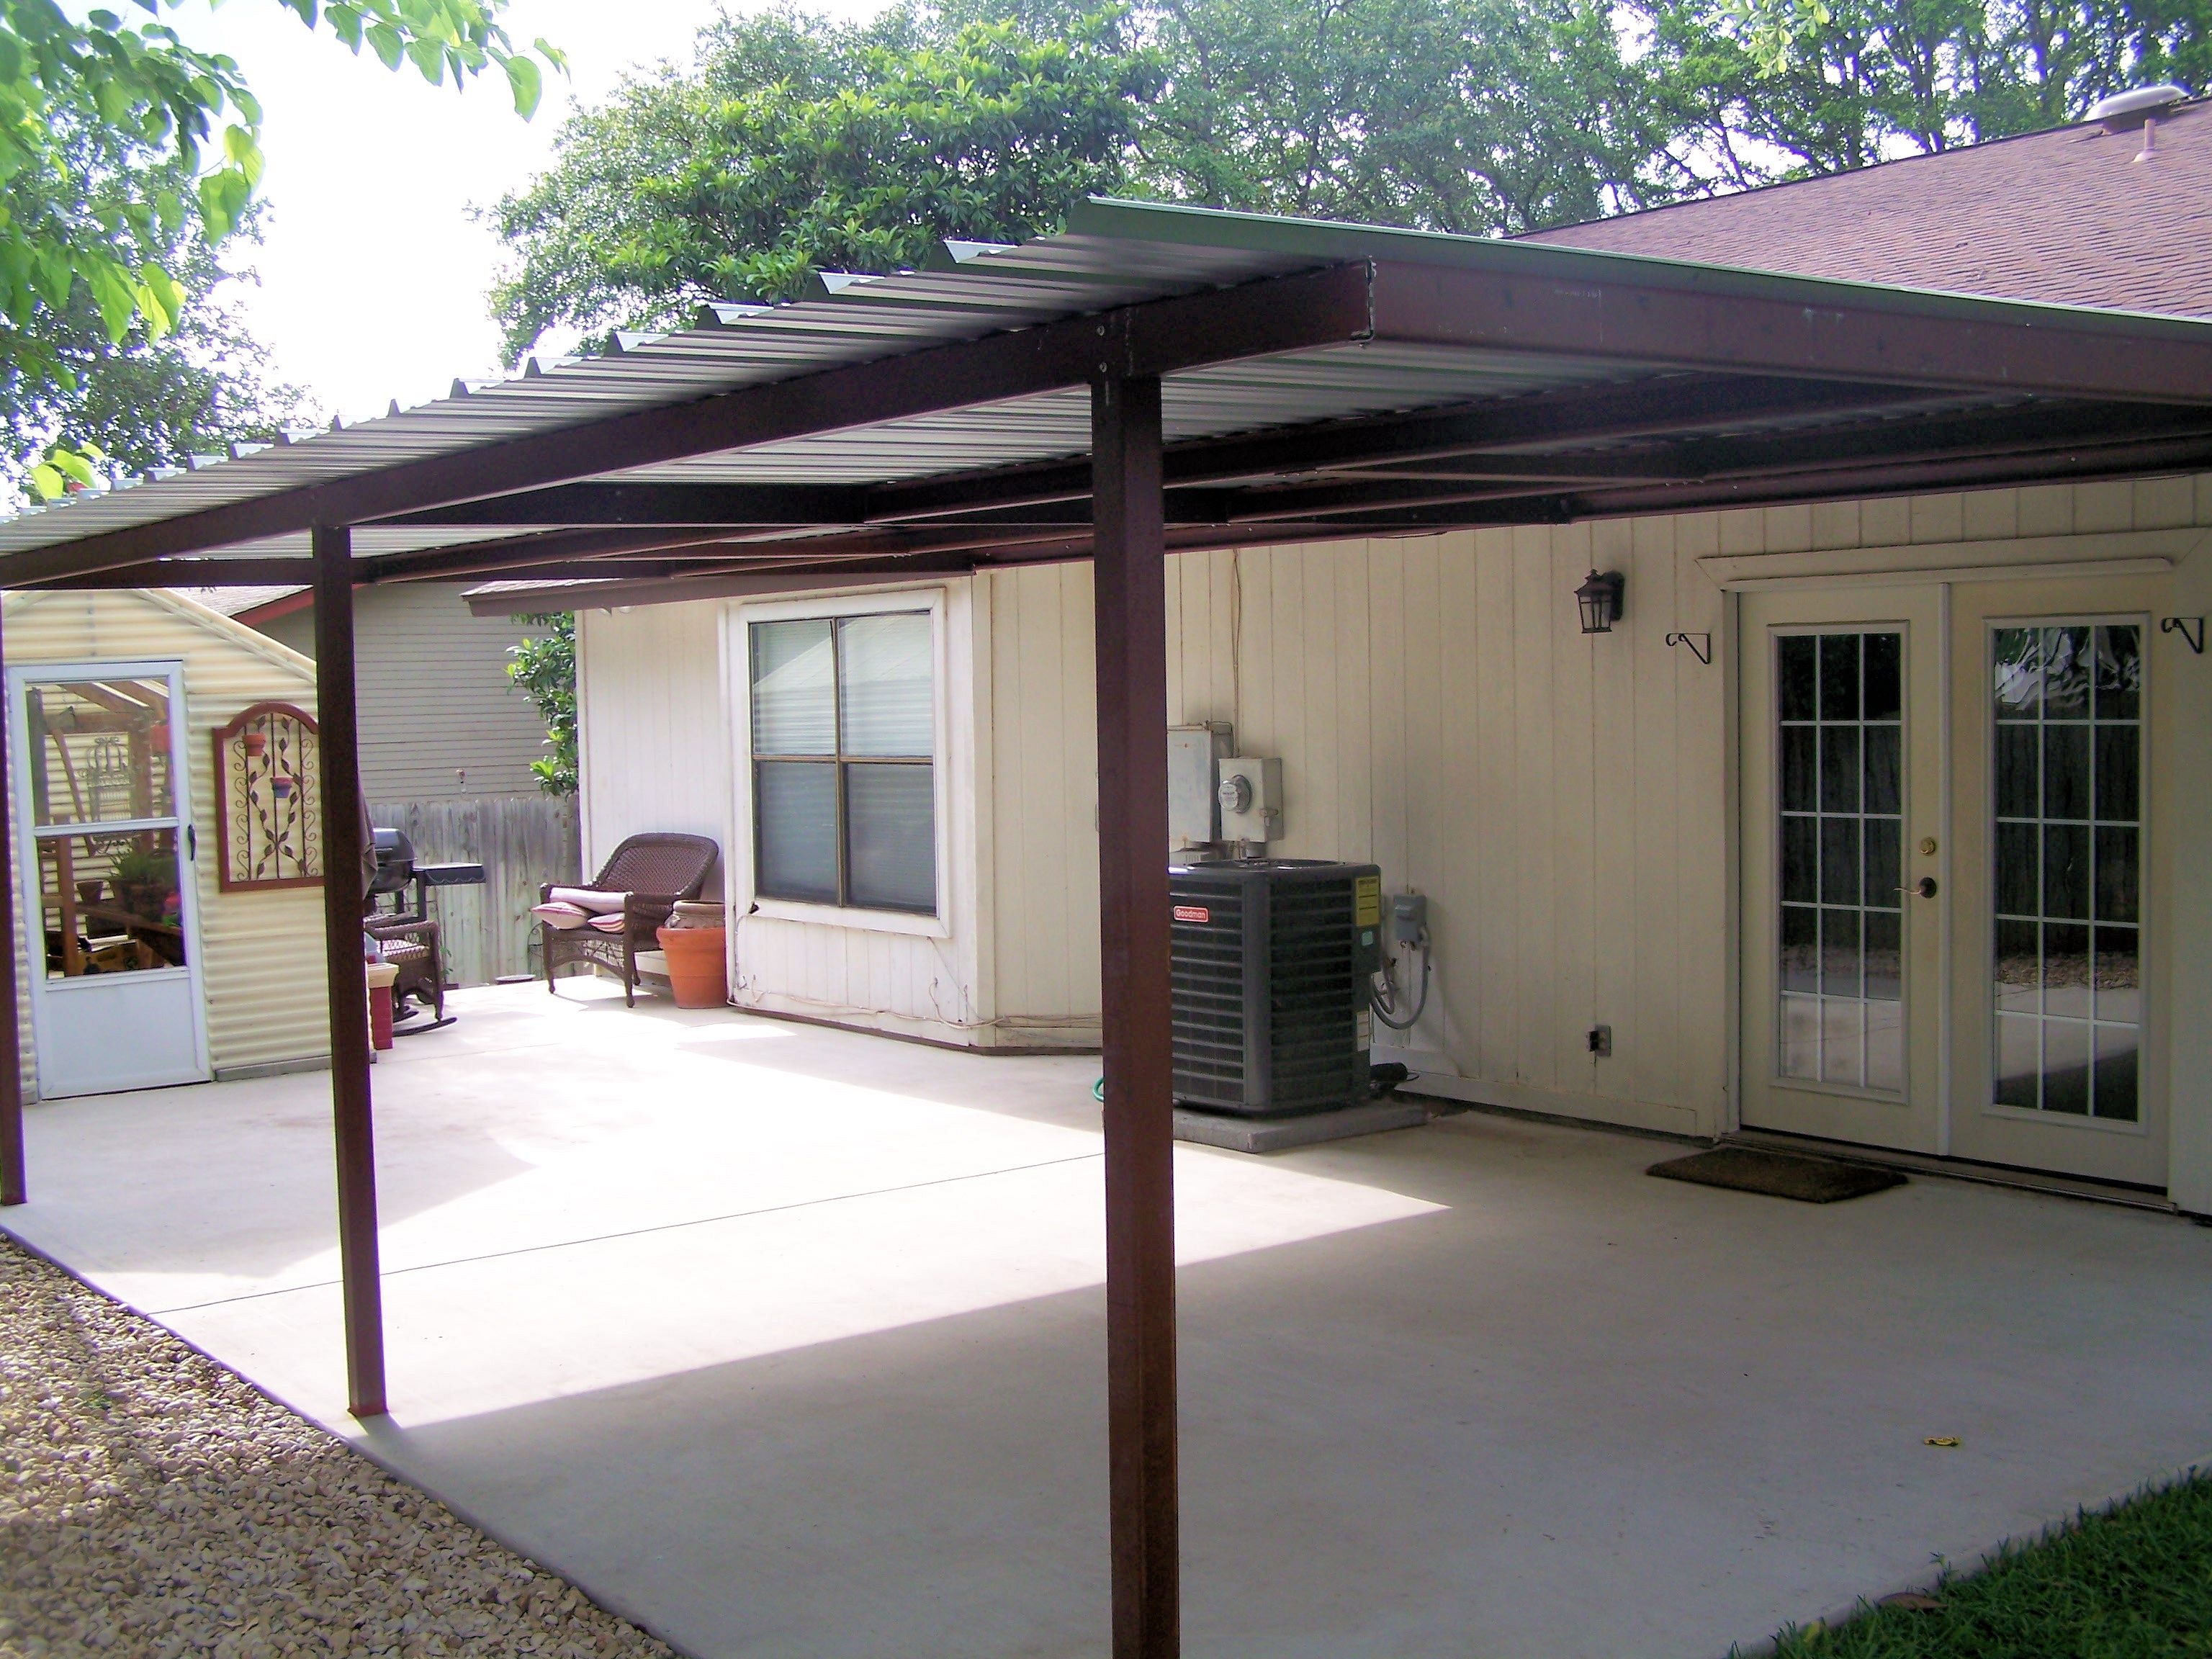 Tarp Lean To Off House | Attached Lean To Patio Cover North West San Antonio